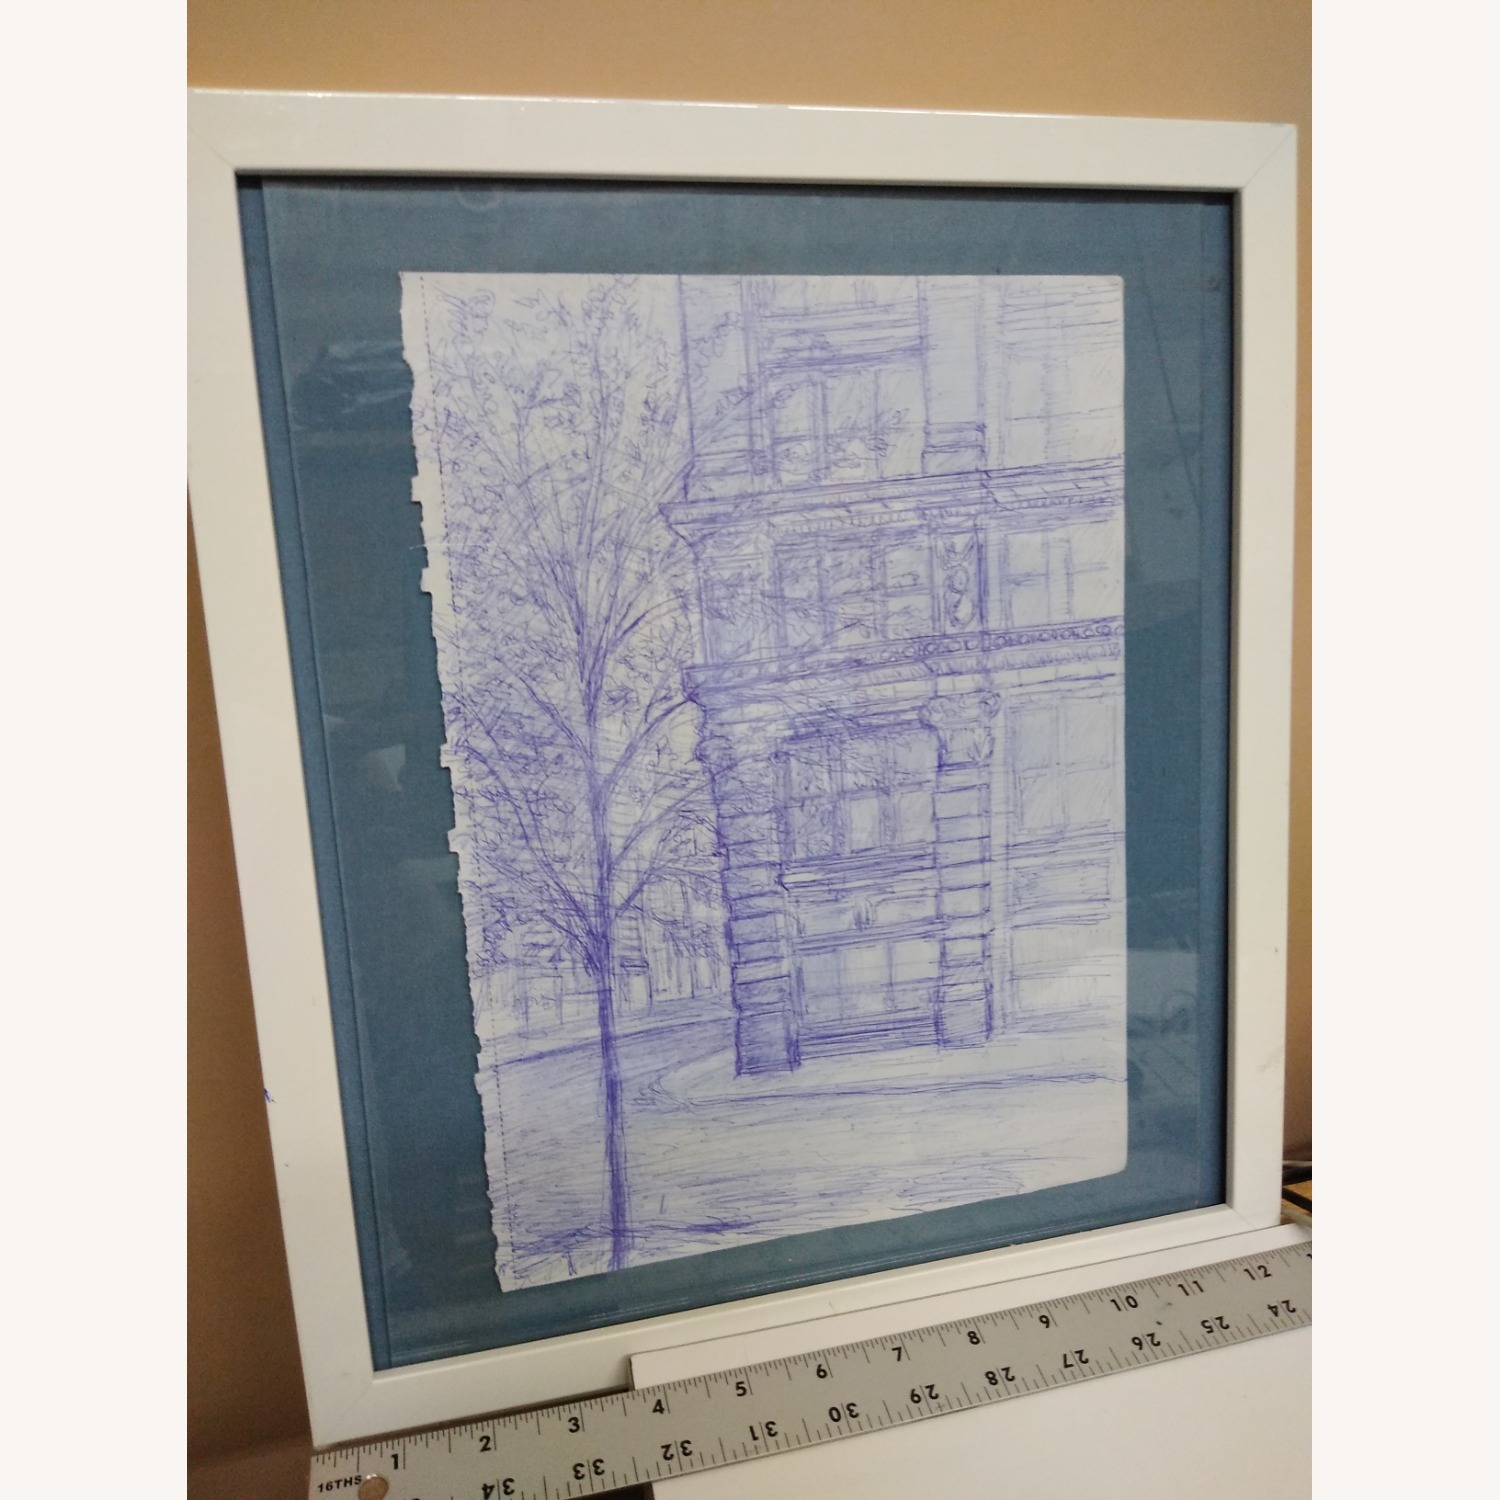 Drawing Restaurant Outdoor Dining View NY - image-9